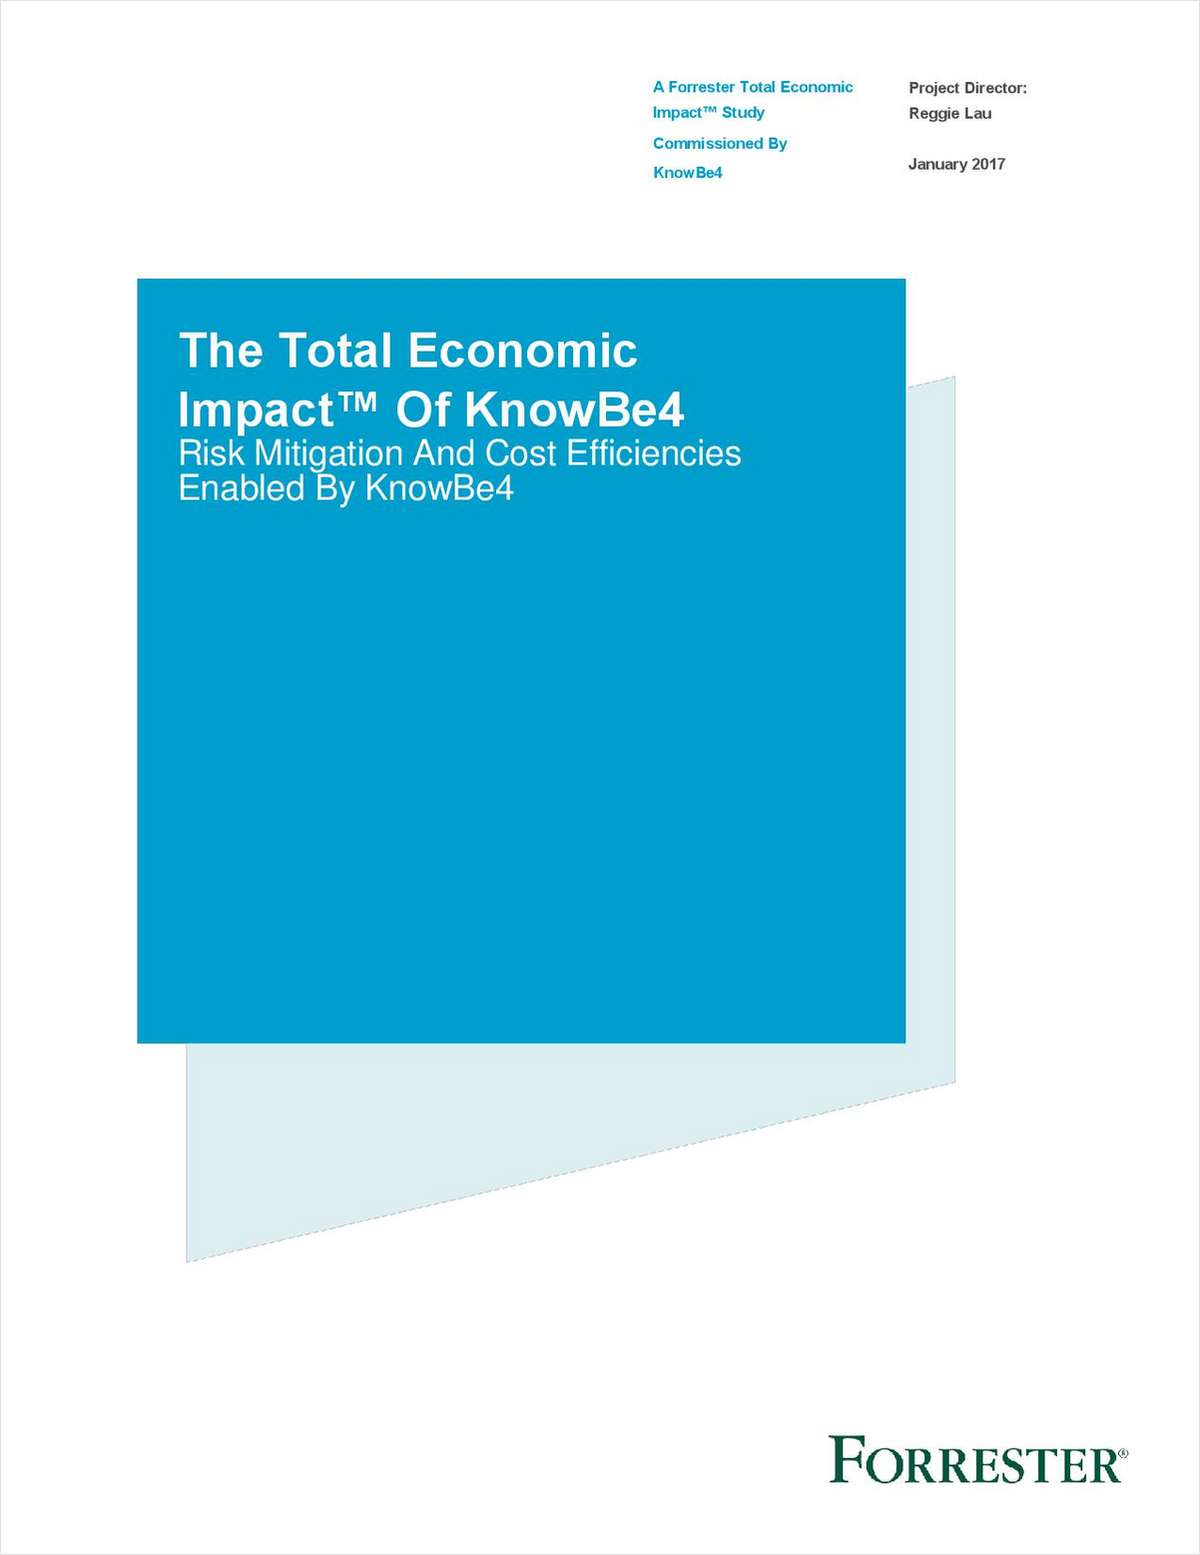 Forrester TEI™ Study: Value of KnowBe4 Goes Beyond ROI, Free